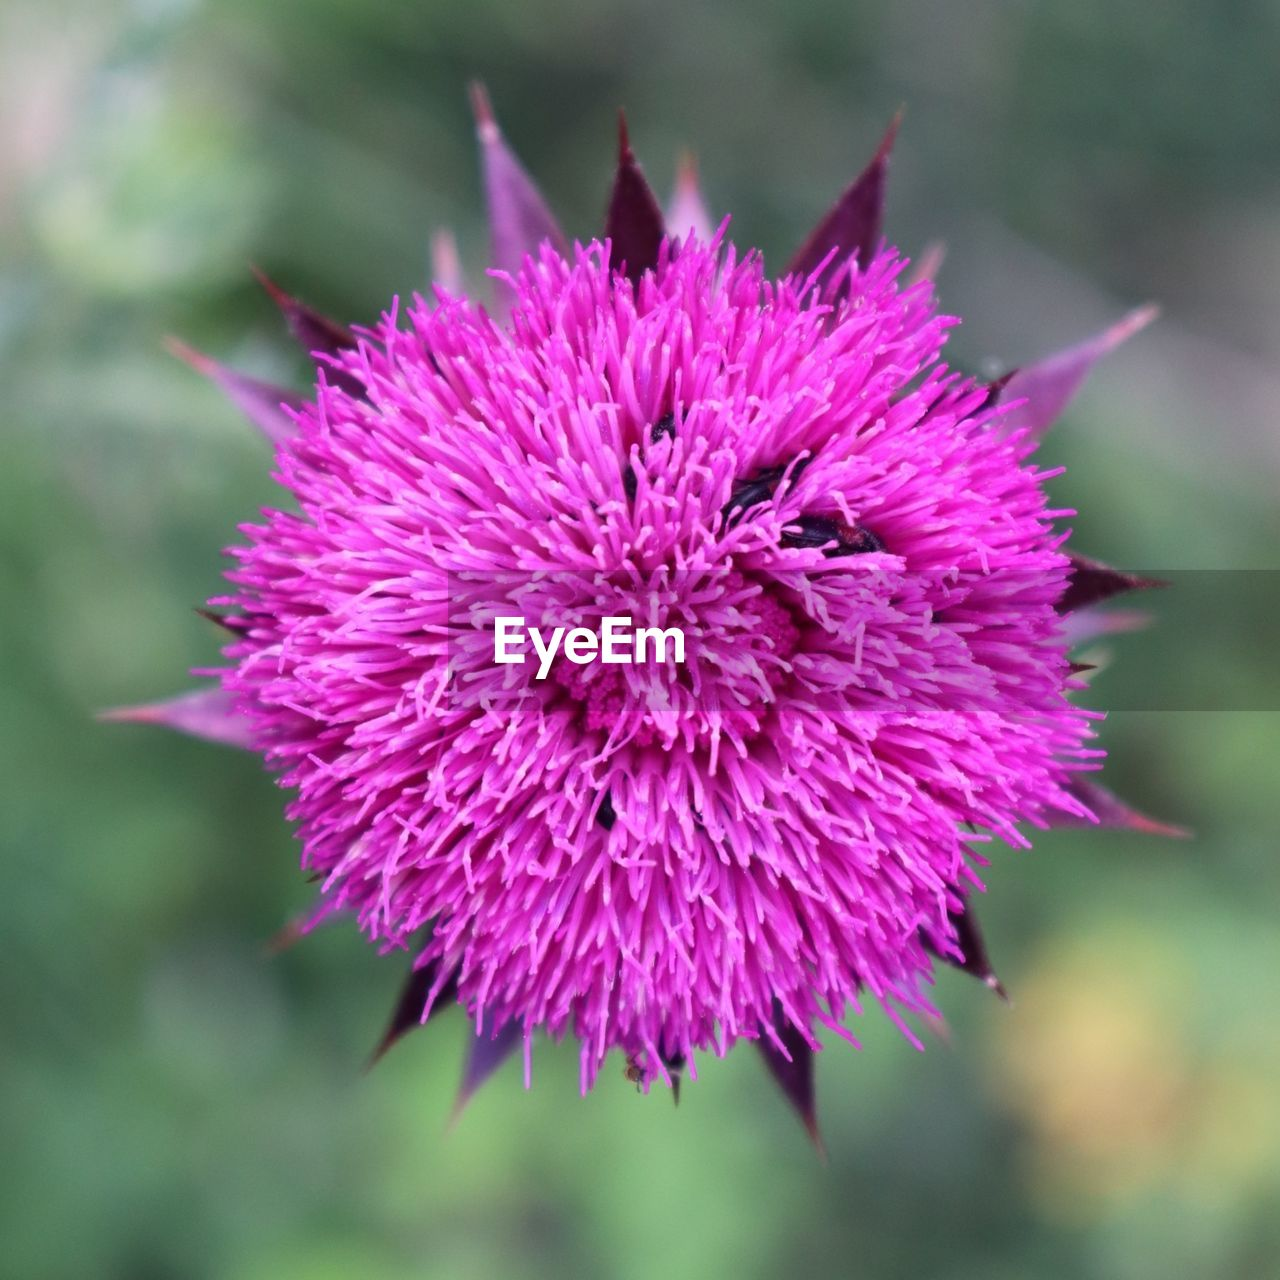 flowering plant, flower, vulnerability, fragility, freshness, plant, beauty in nature, close-up, flower head, petal, inflorescence, growth, focus on foreground, nature, pink color, day, no people, purple, outdoors, spiky, focus